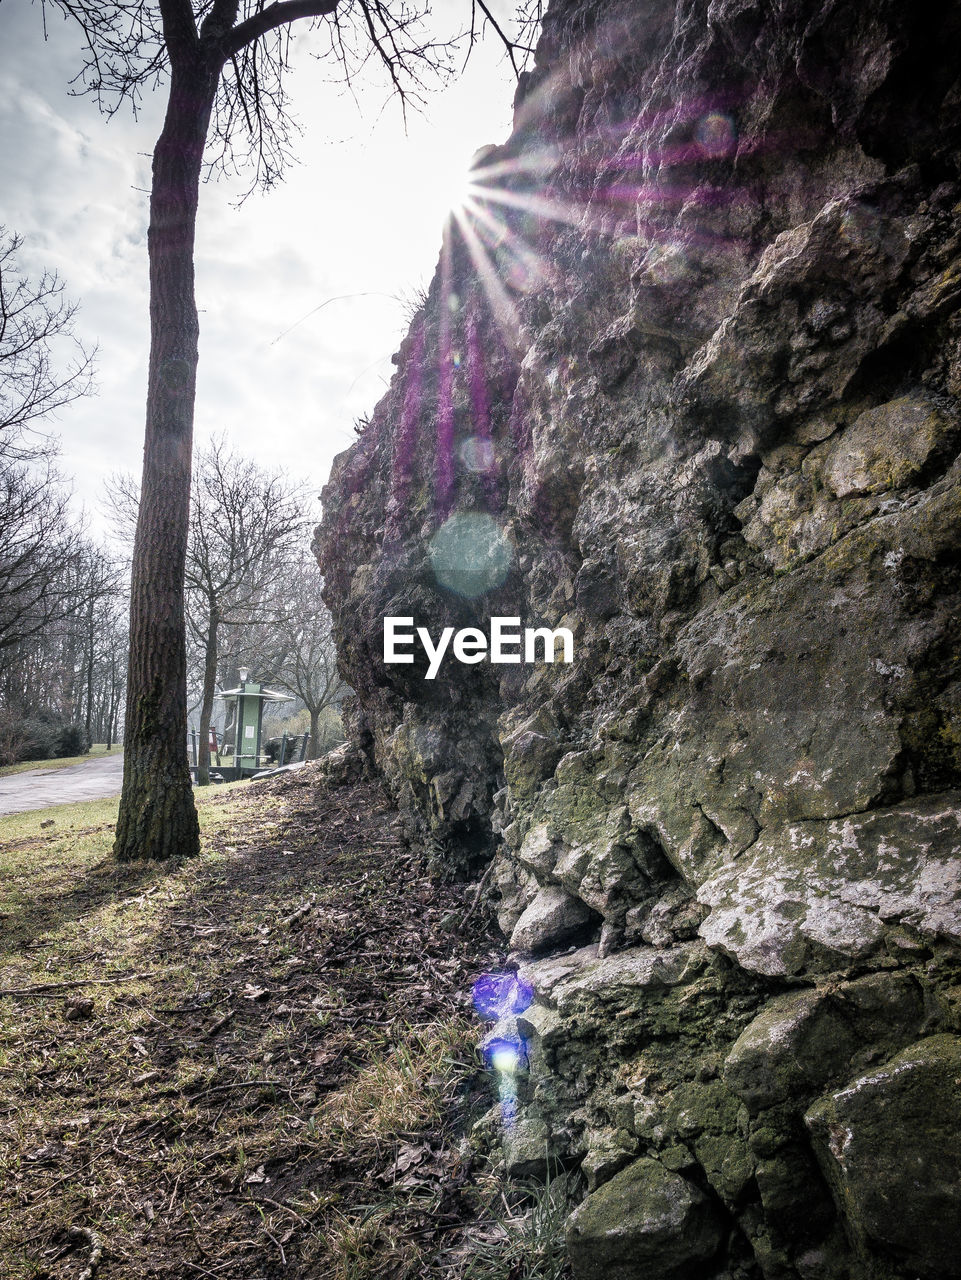 plant, tree, nature, land, beauty in nature, day, rock, tree trunk, solid, rock - object, outdoors, trunk, growth, forest, scenics - nature, real people, sky, environment, non-urban scene, rock formation, lens flare, purple